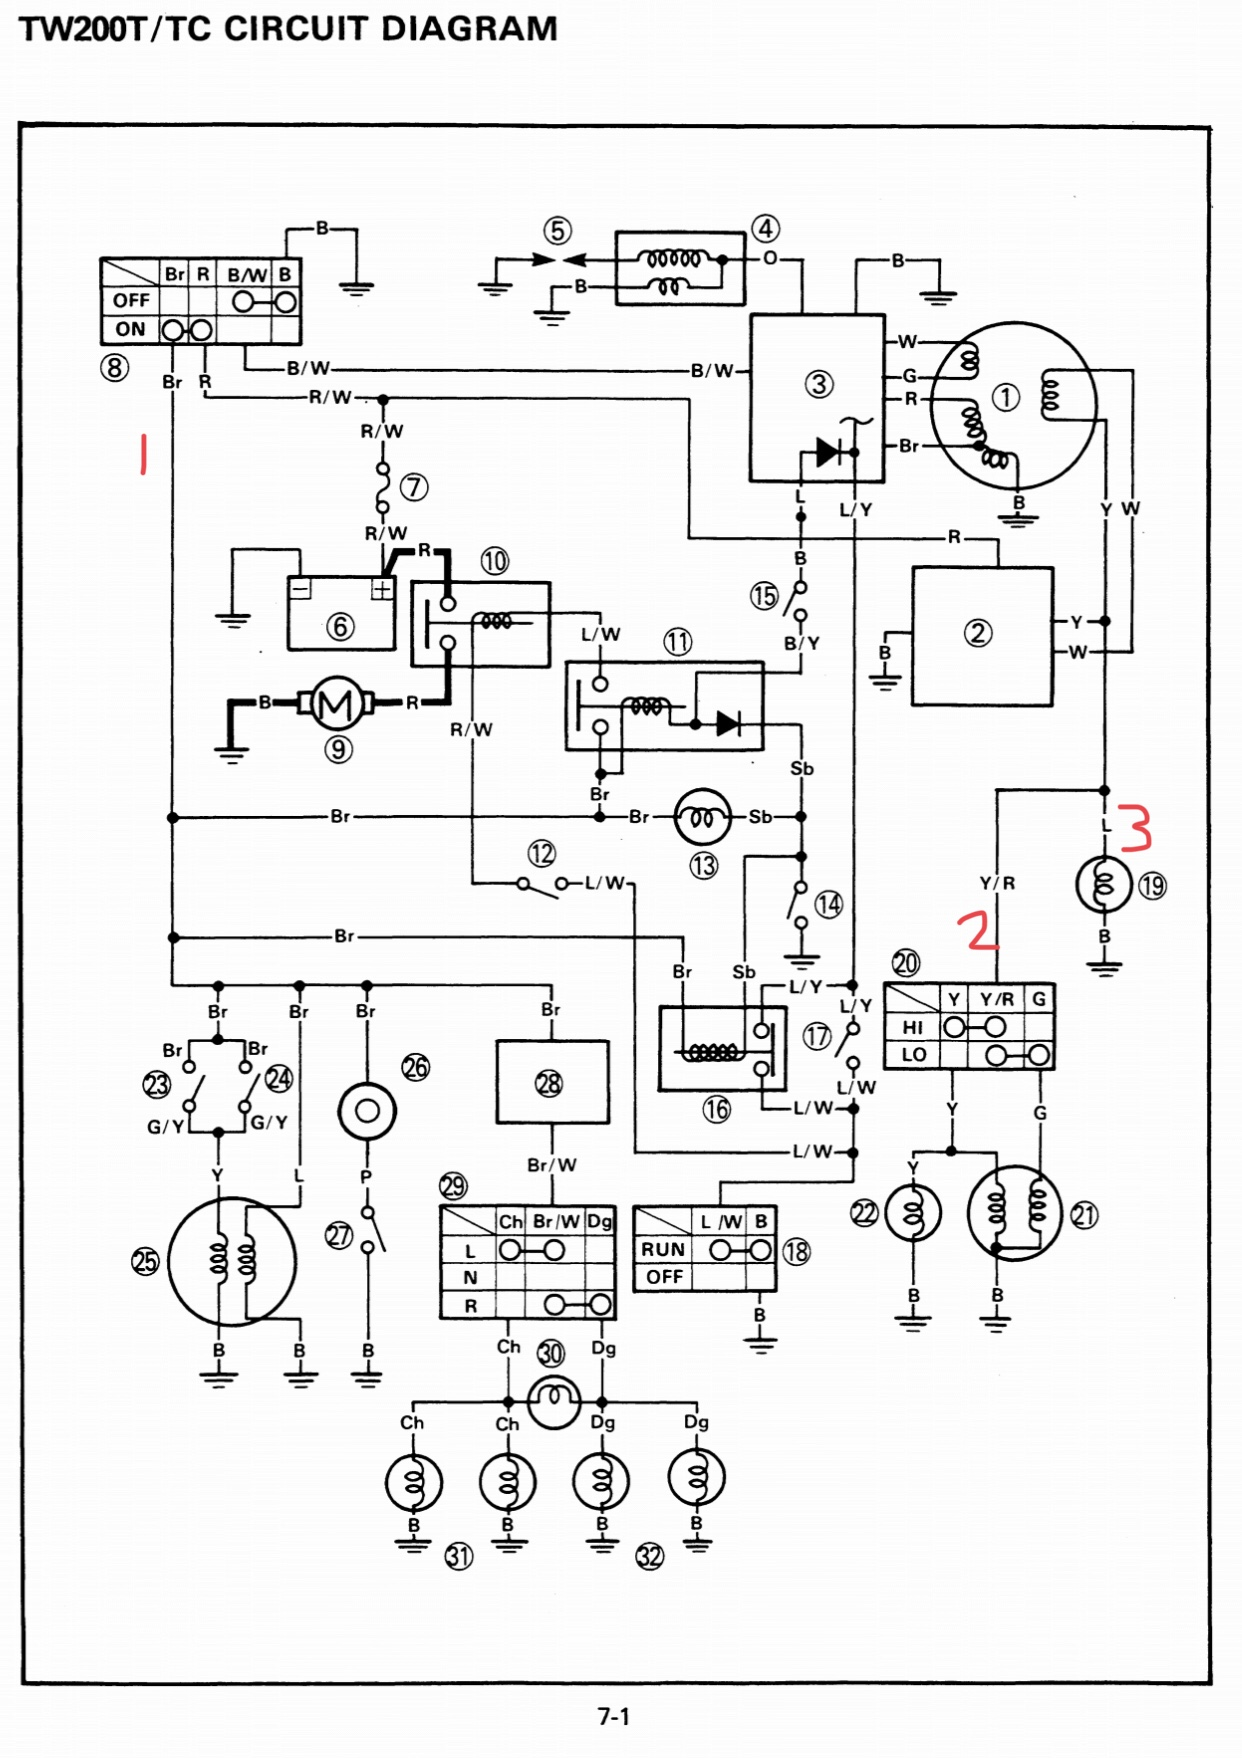 Yamaha Tw200 Wiring Diagram - Wiring Diagram Replace high-classroom -  high-classroom.miramontiseo.it | Tw200 Wiring Diagram |  | high-classroom.miramontiseo.it